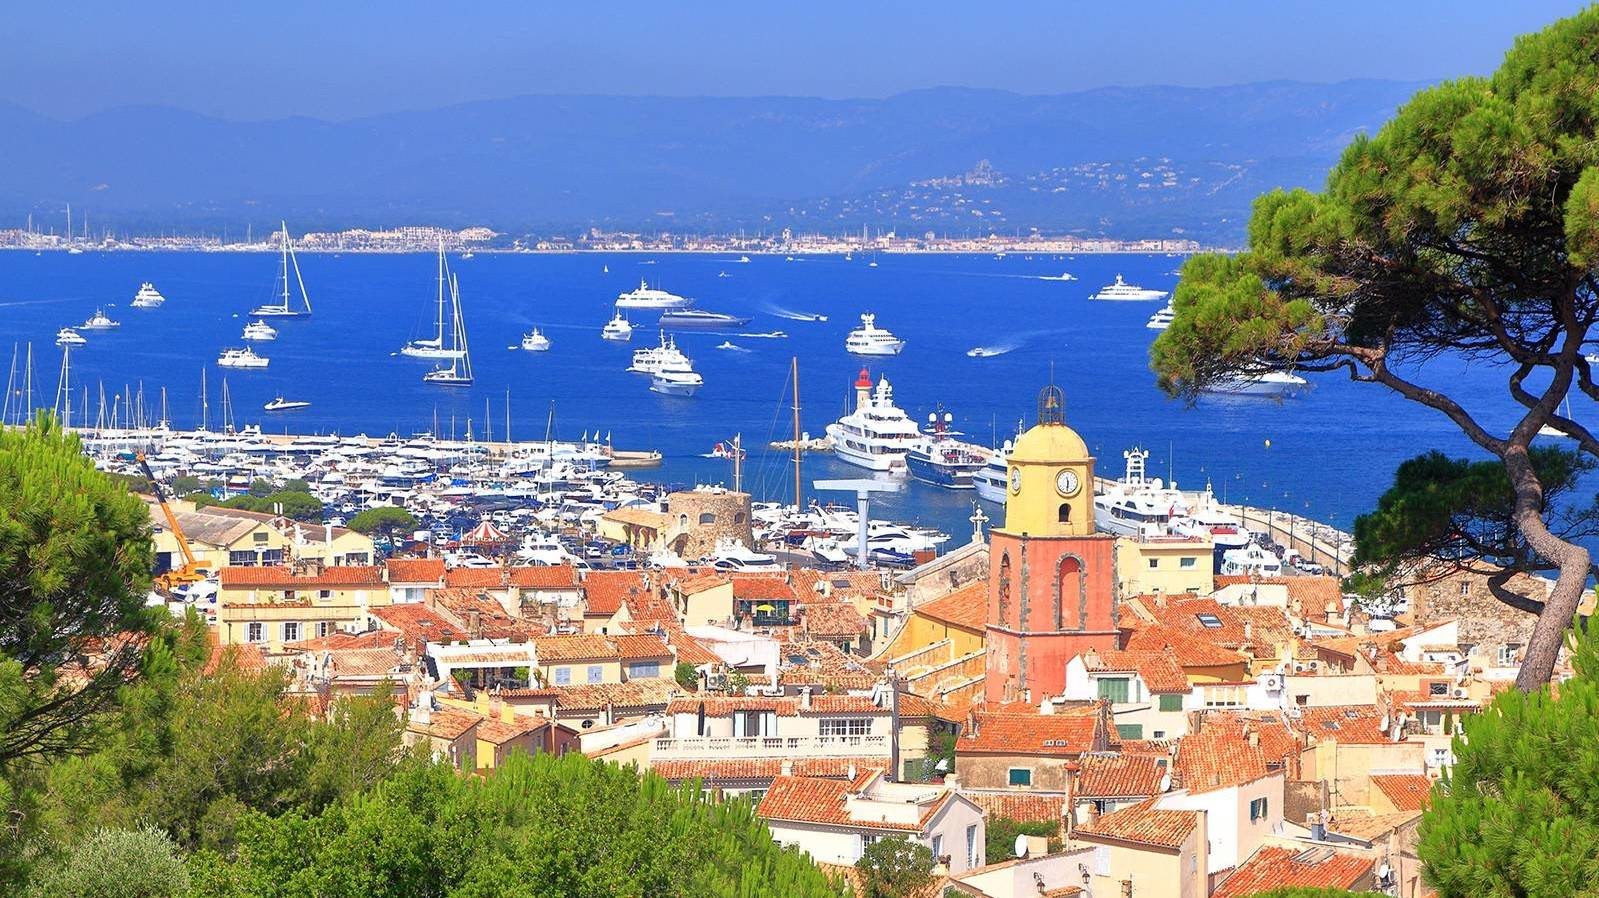 Saint-Tropez - The Best Places To Visit In France